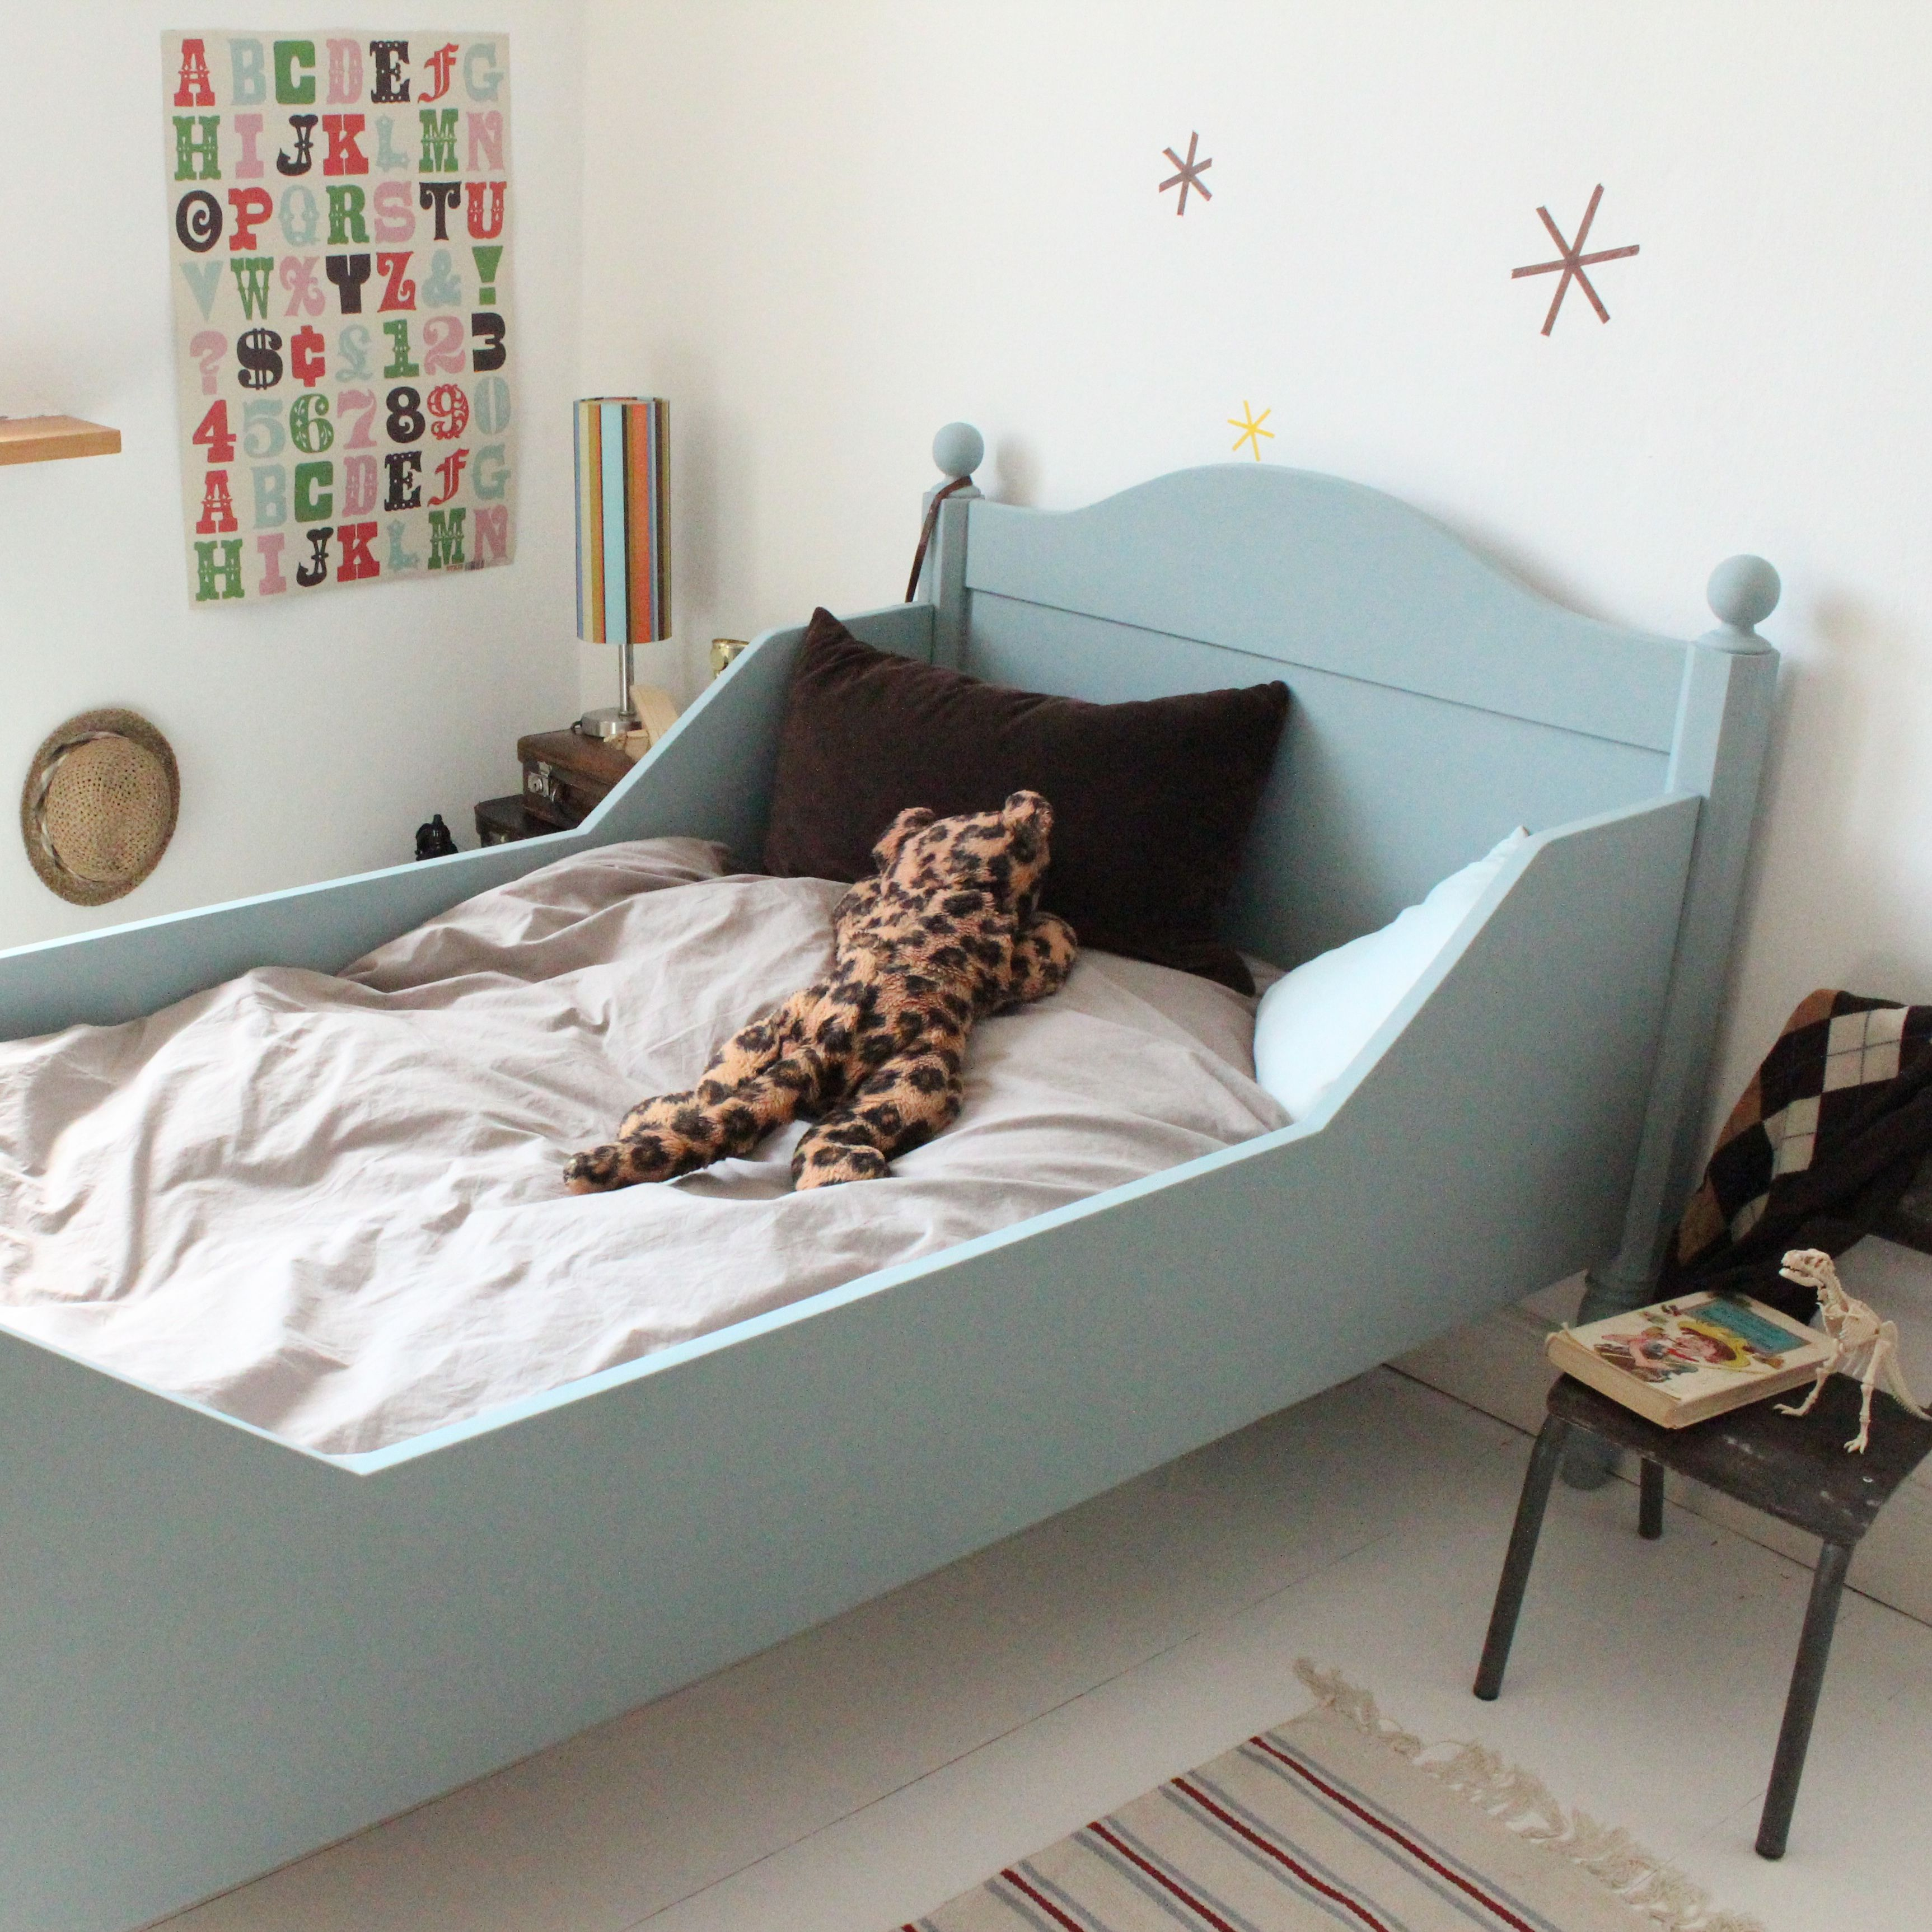 antike betten f r kinder auf antique bed for kids. Black Bedroom Furniture Sets. Home Design Ideas